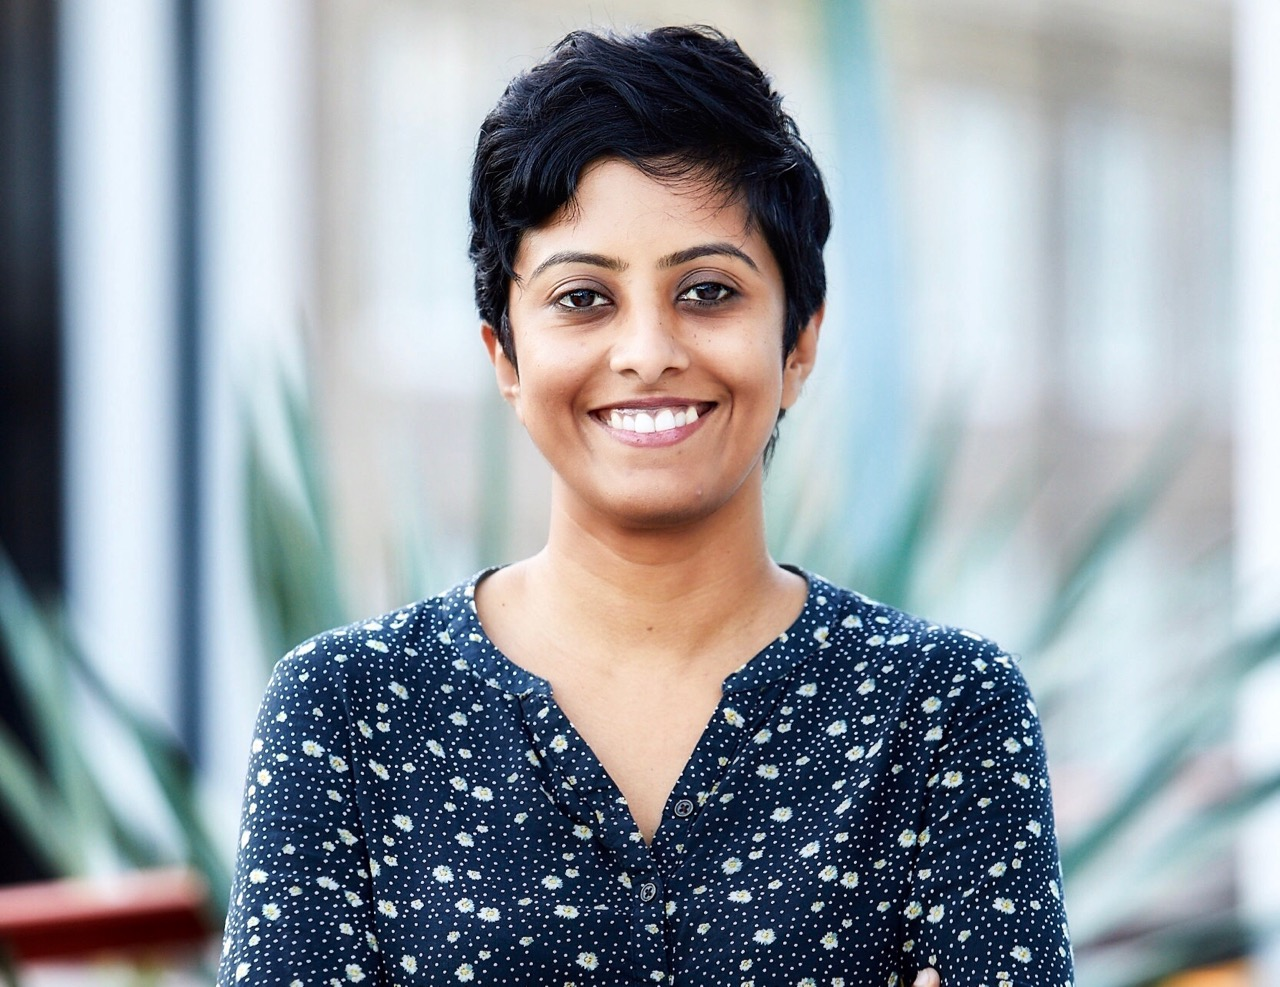 Heckler appoints Charu Menon as executive producer for Singapore